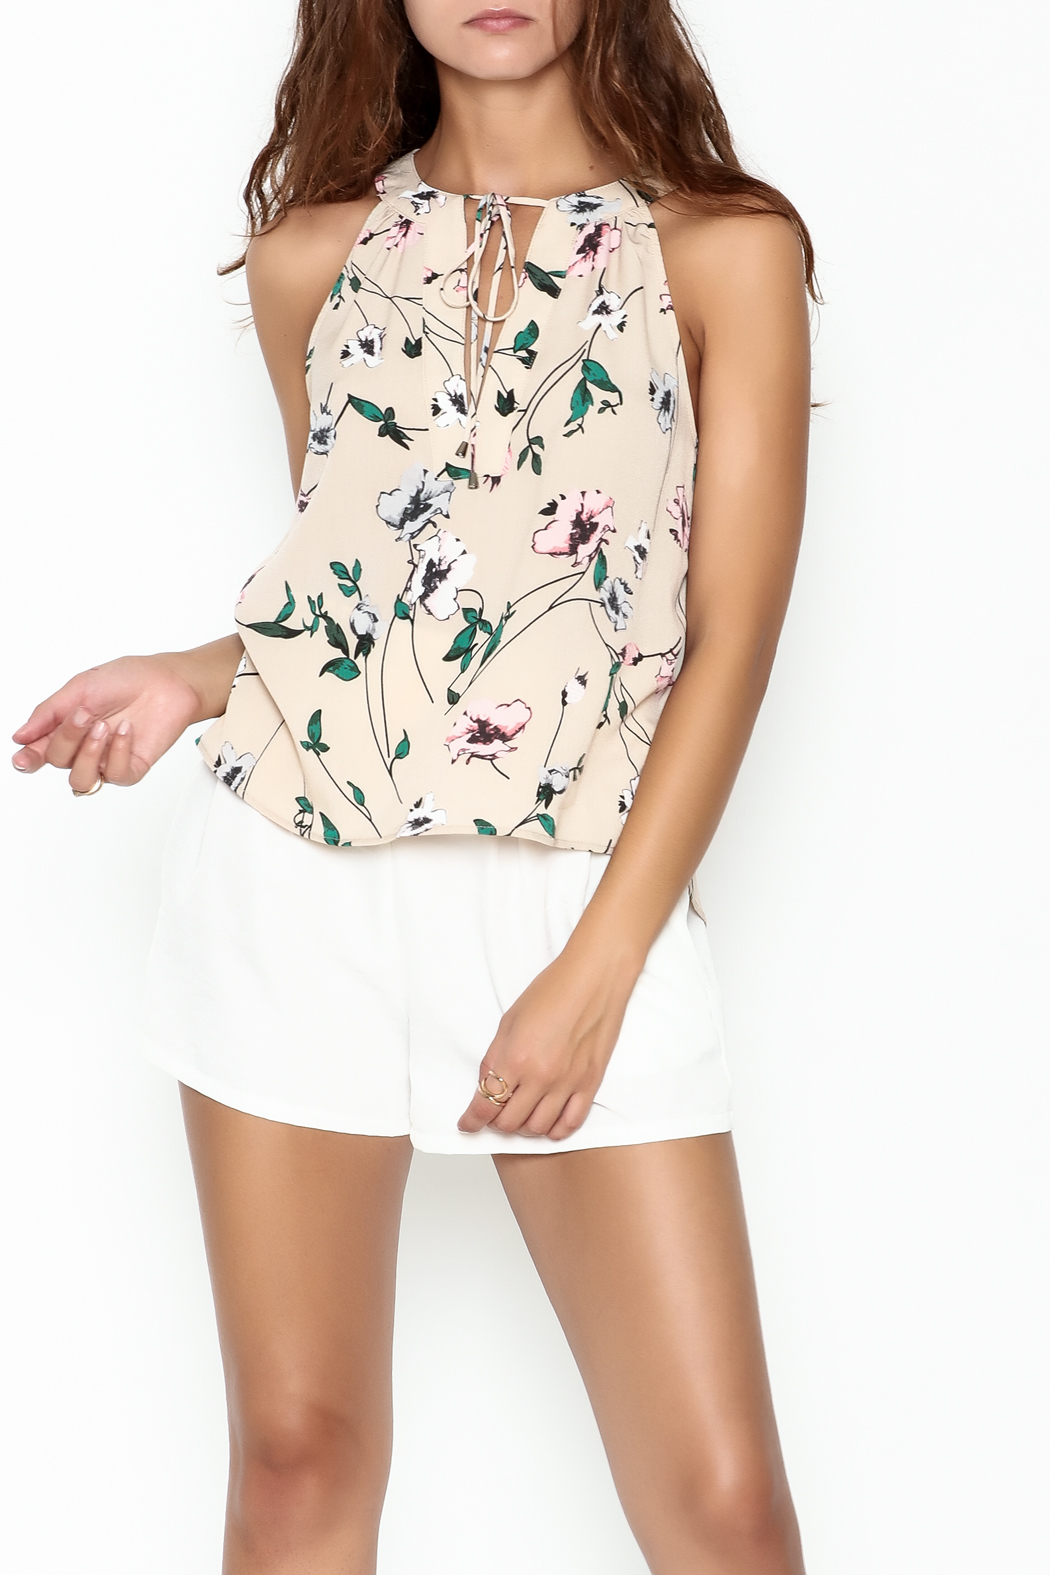 Everly Floral Halter Top - Main Image